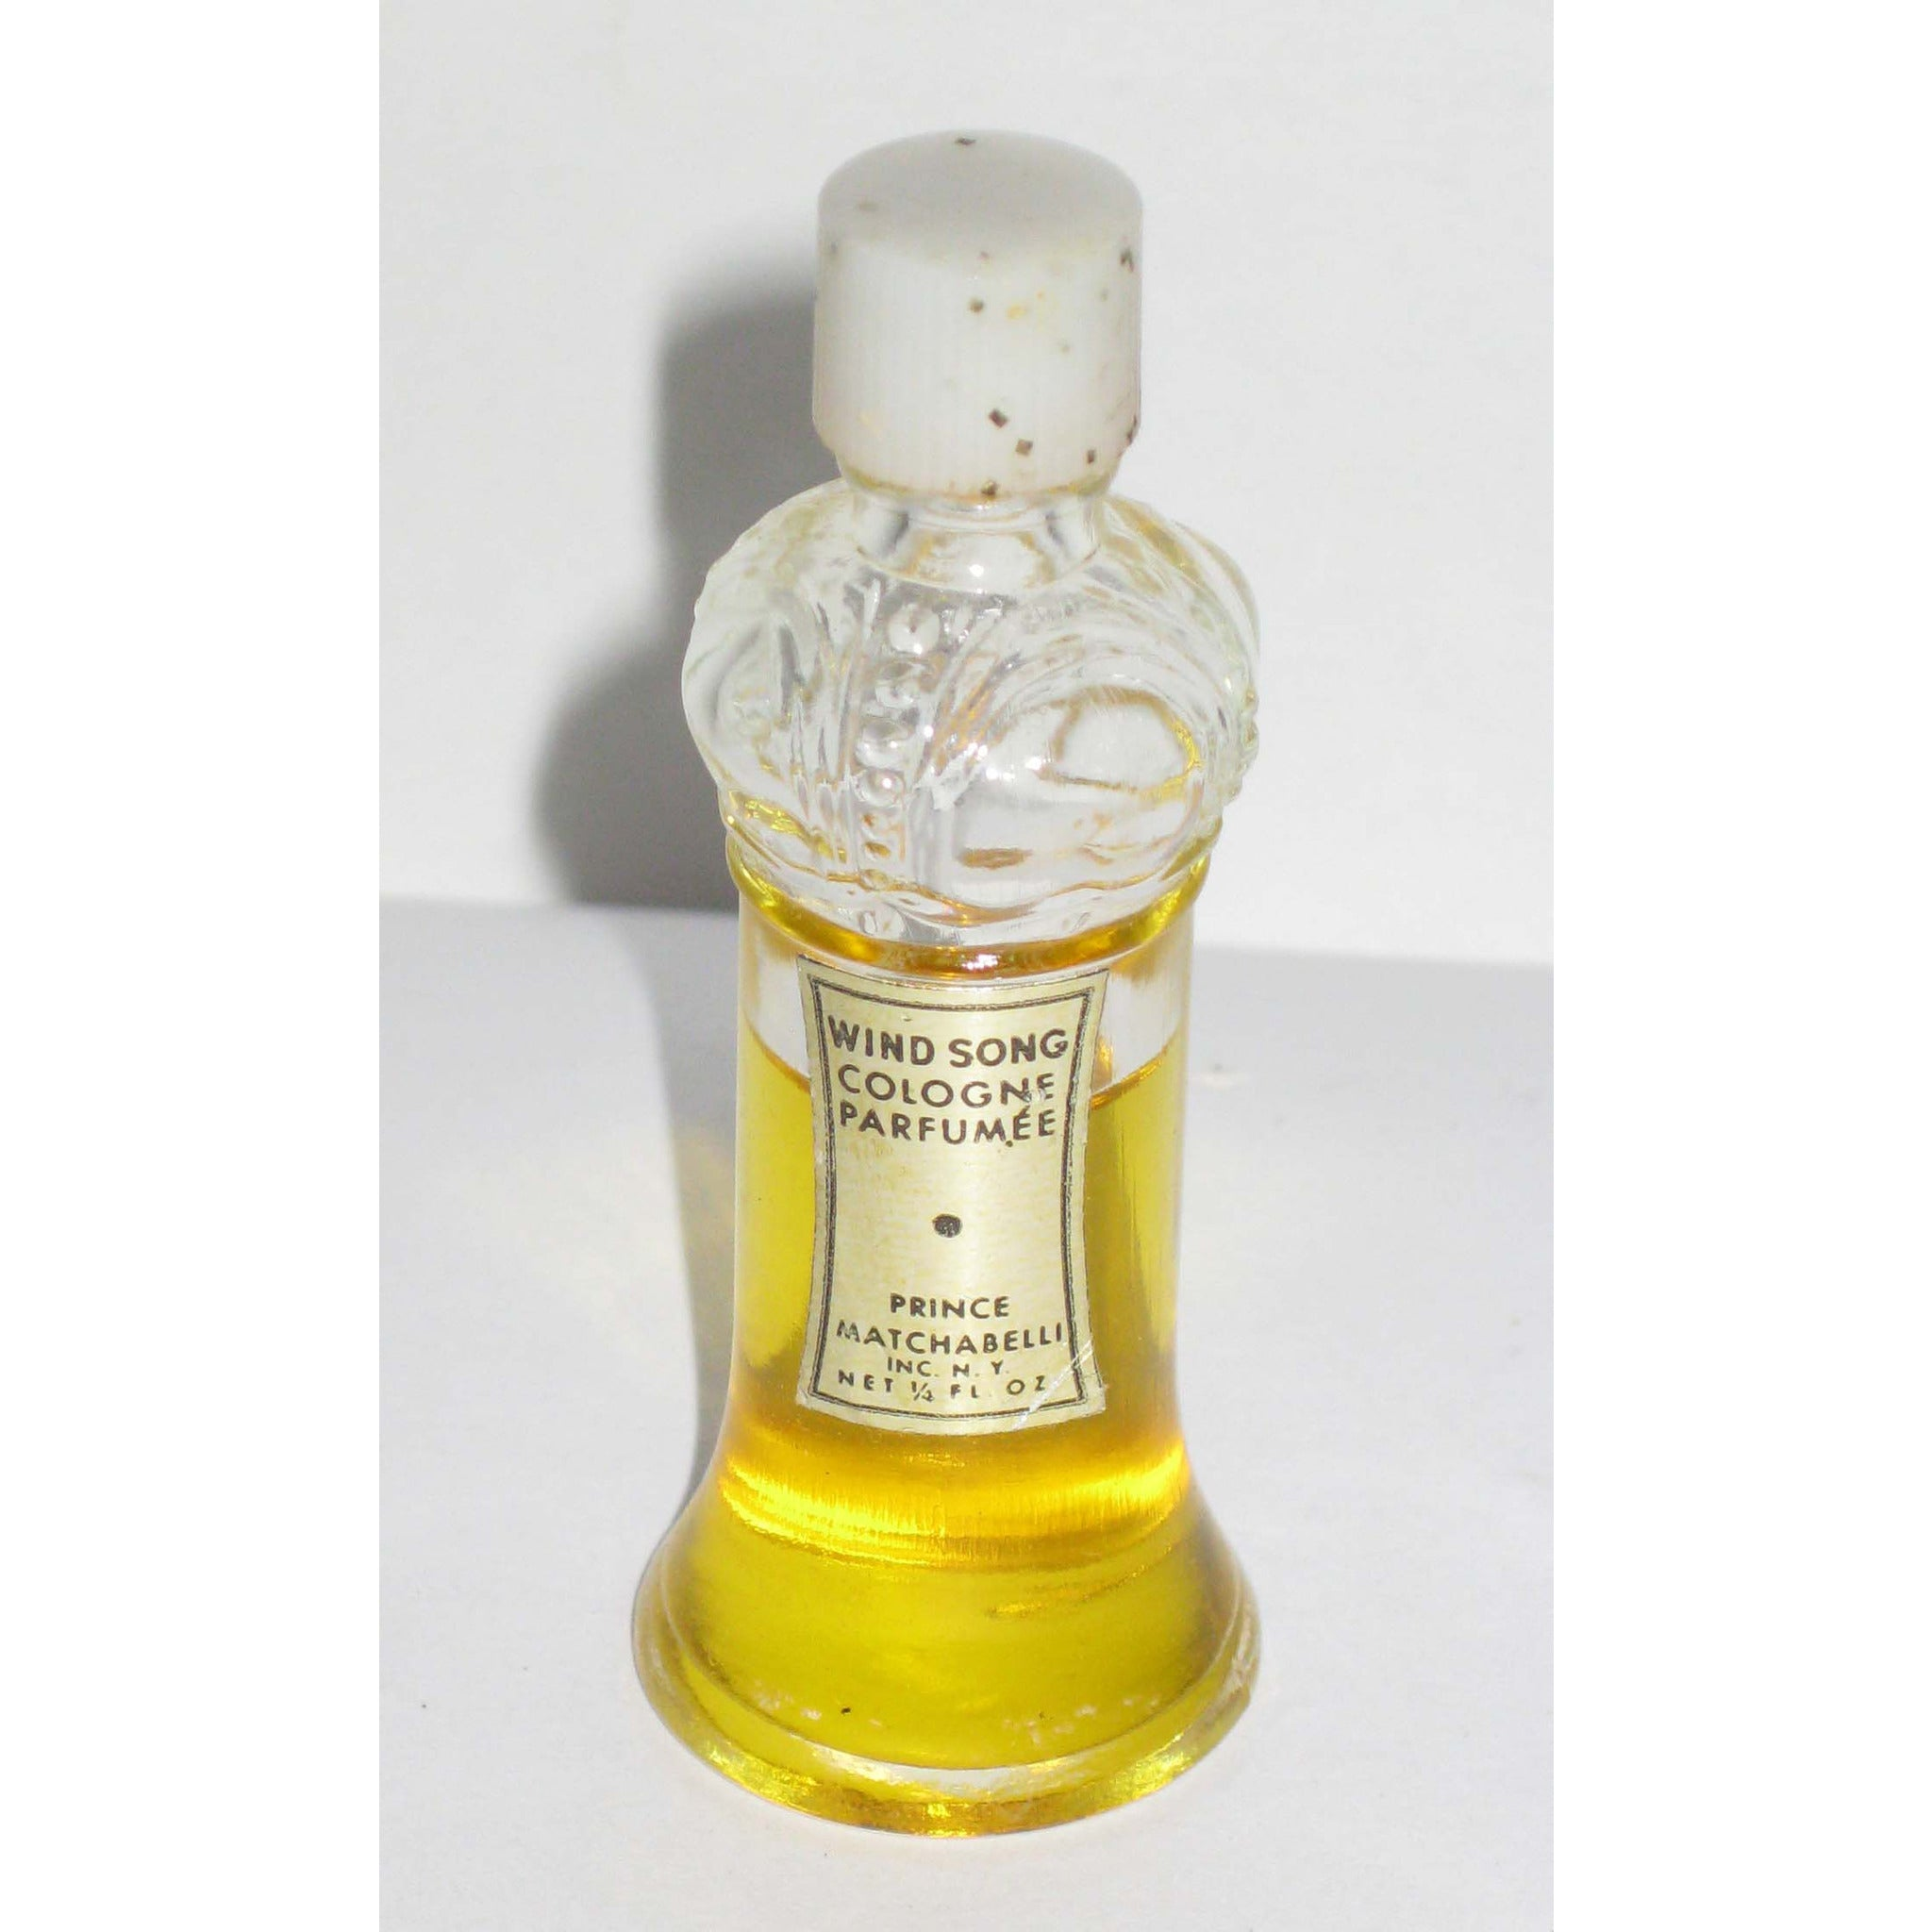 Vintage Wind Song Cologne Mini By Prince Matchabelli